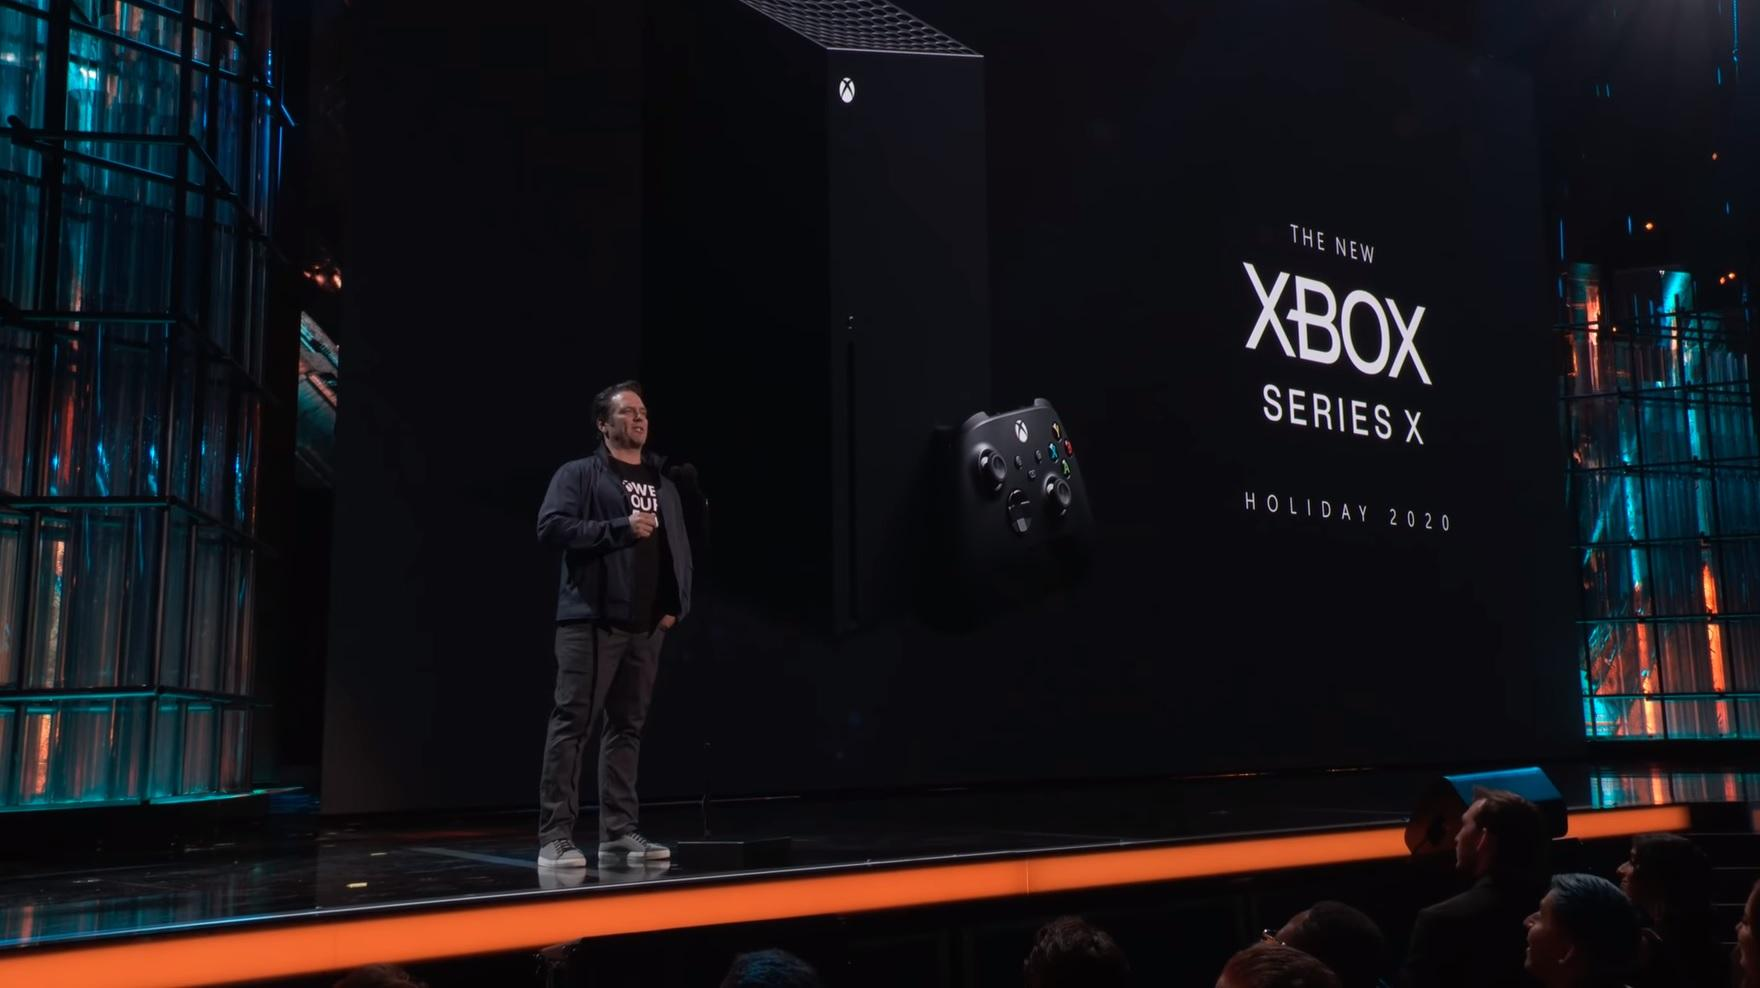 Phil Spencer hasn't given up on Xbox VR just yet